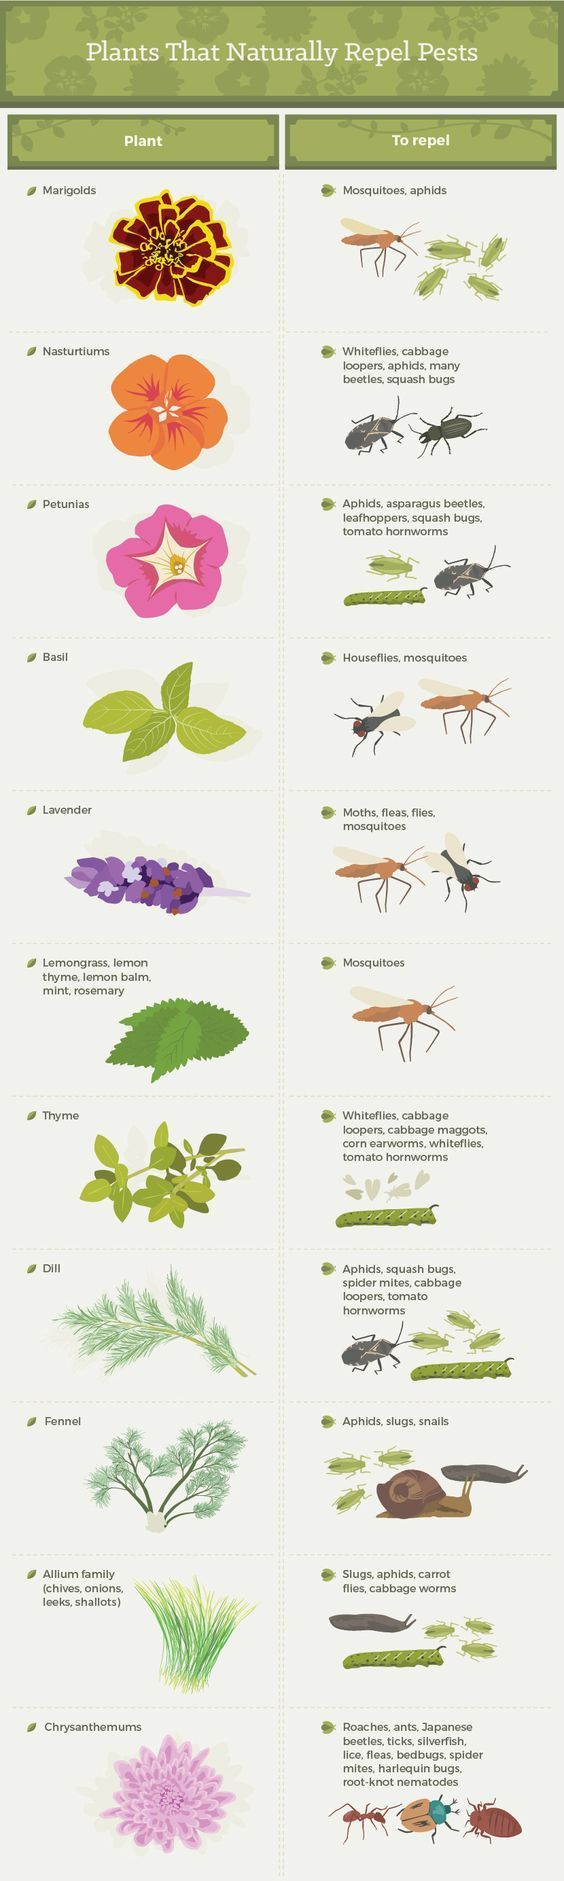 Companion planting for bug control. Found at fix.com awesome article!